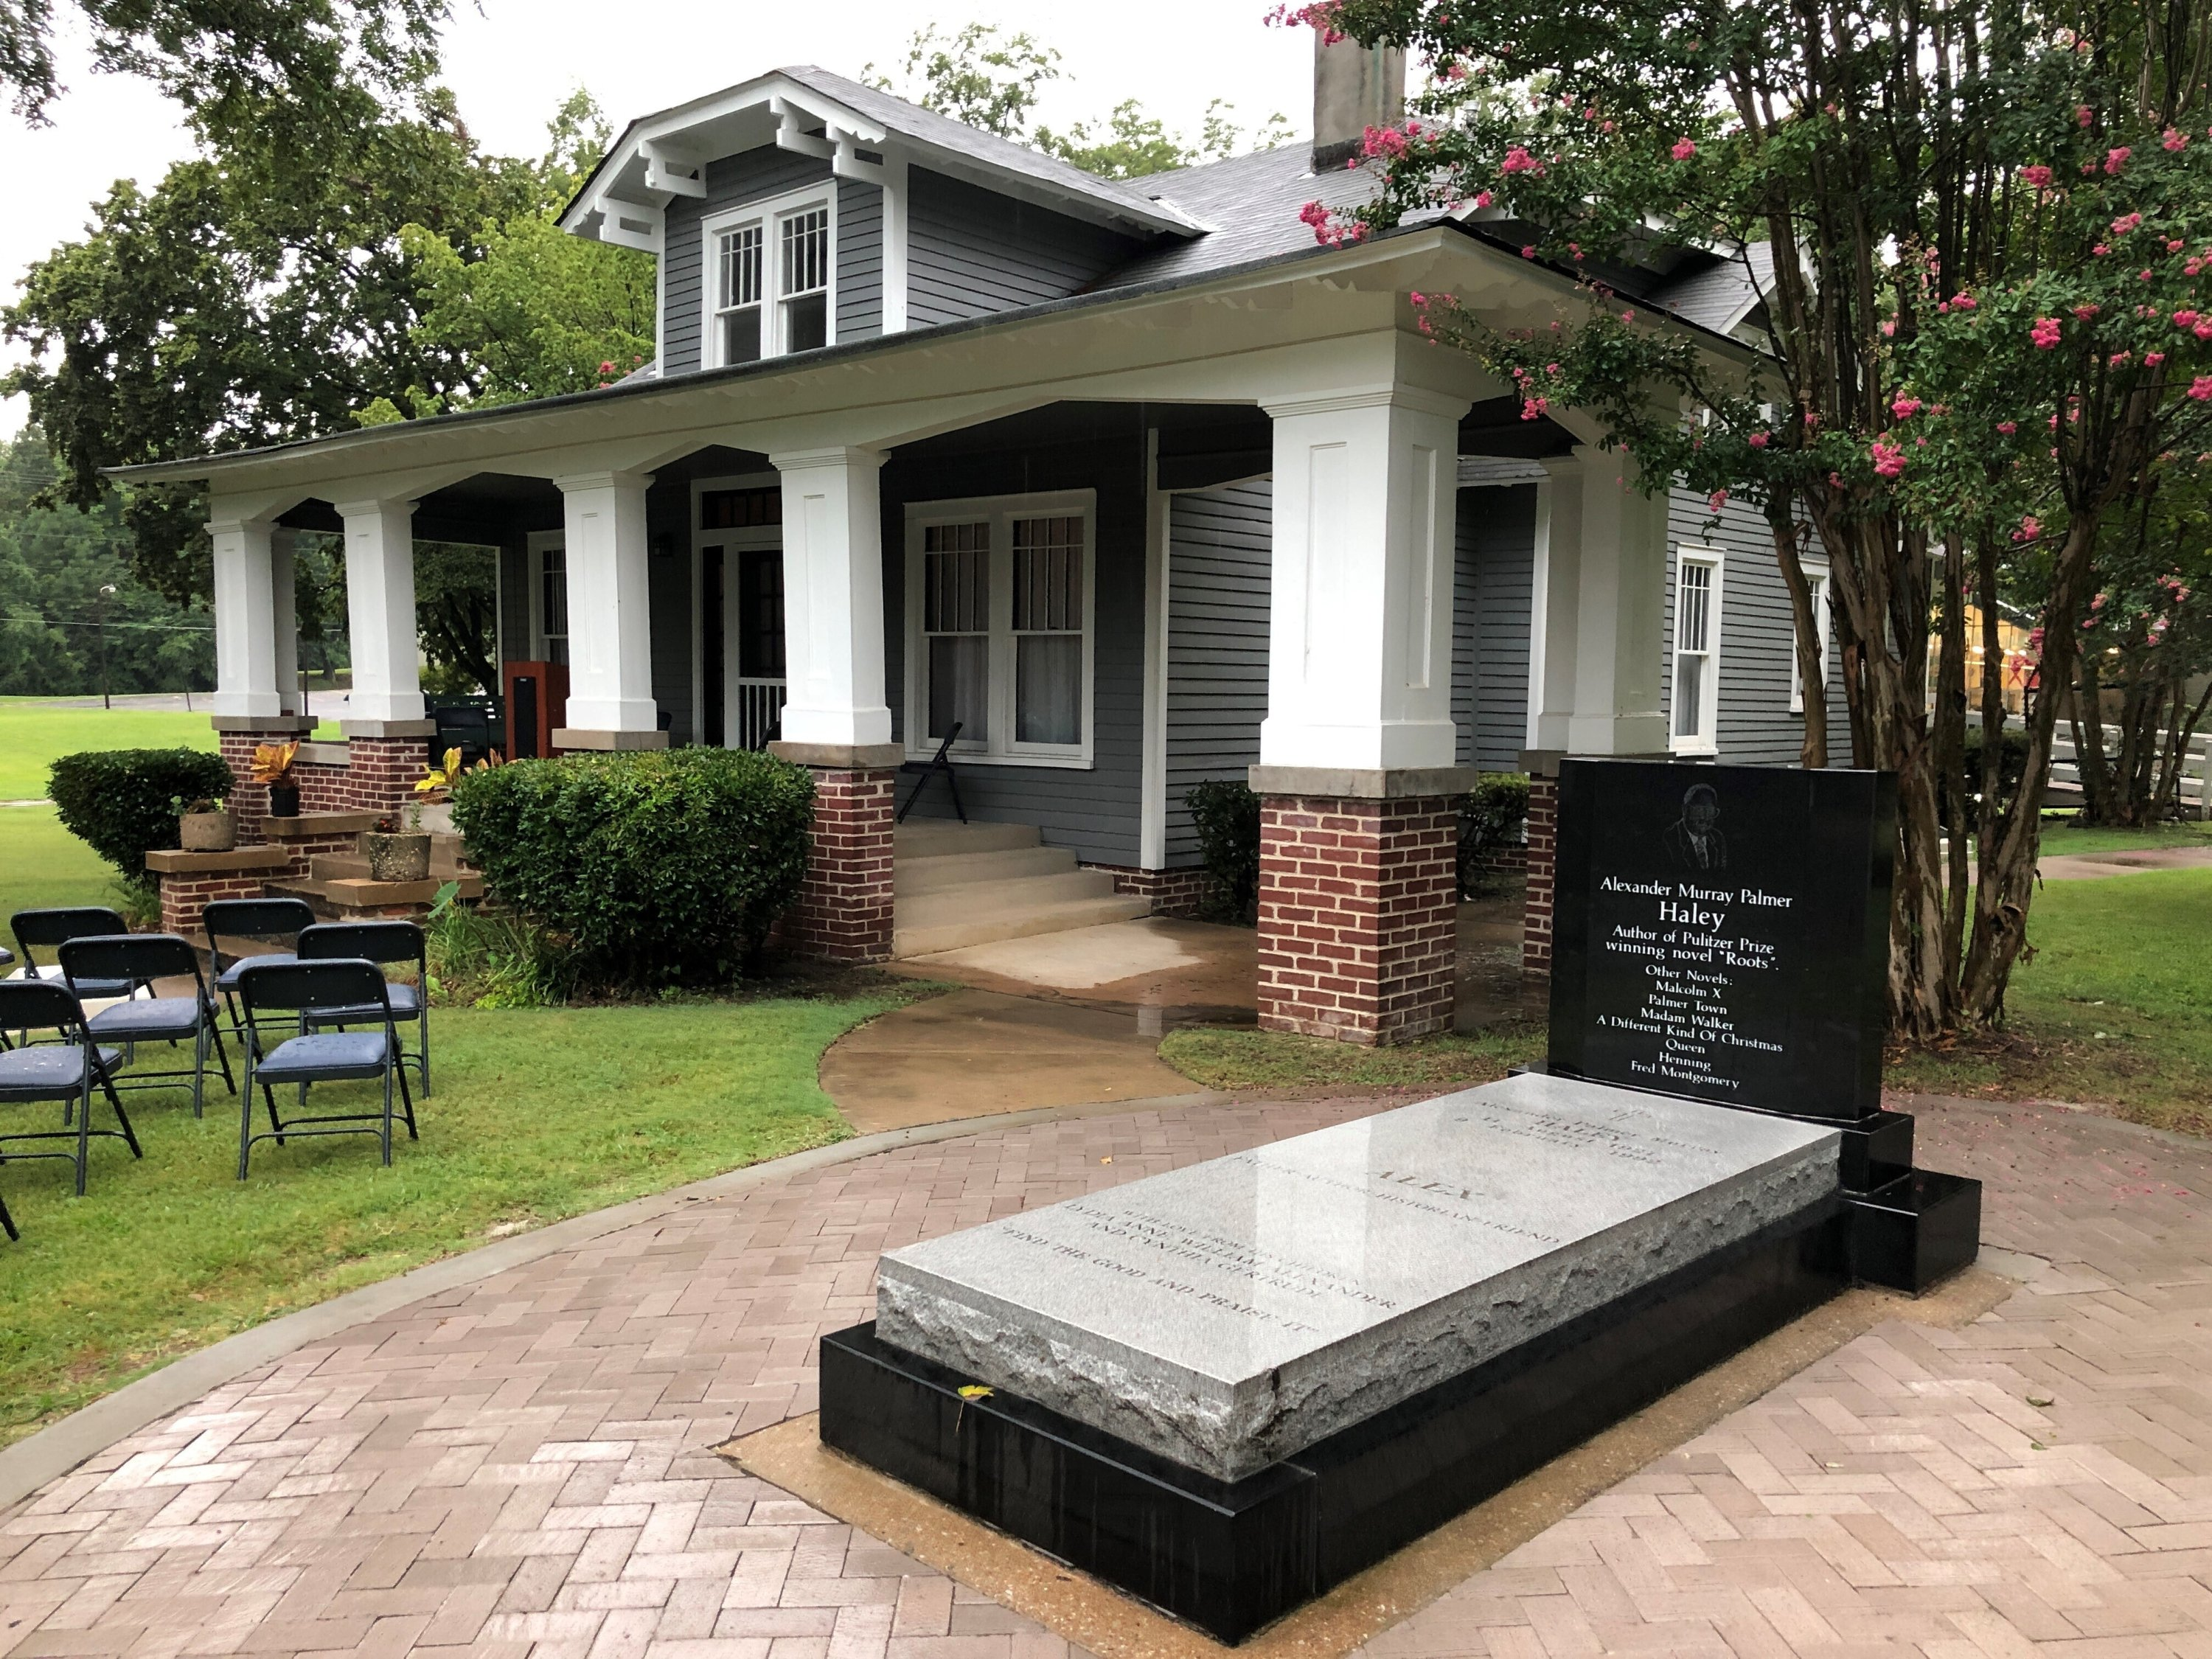 The grave of late author Alex Haley sits outside his former boyhood home in Henning, Tennessee, U.S., Aug. 13, 2021. (AP Photo)